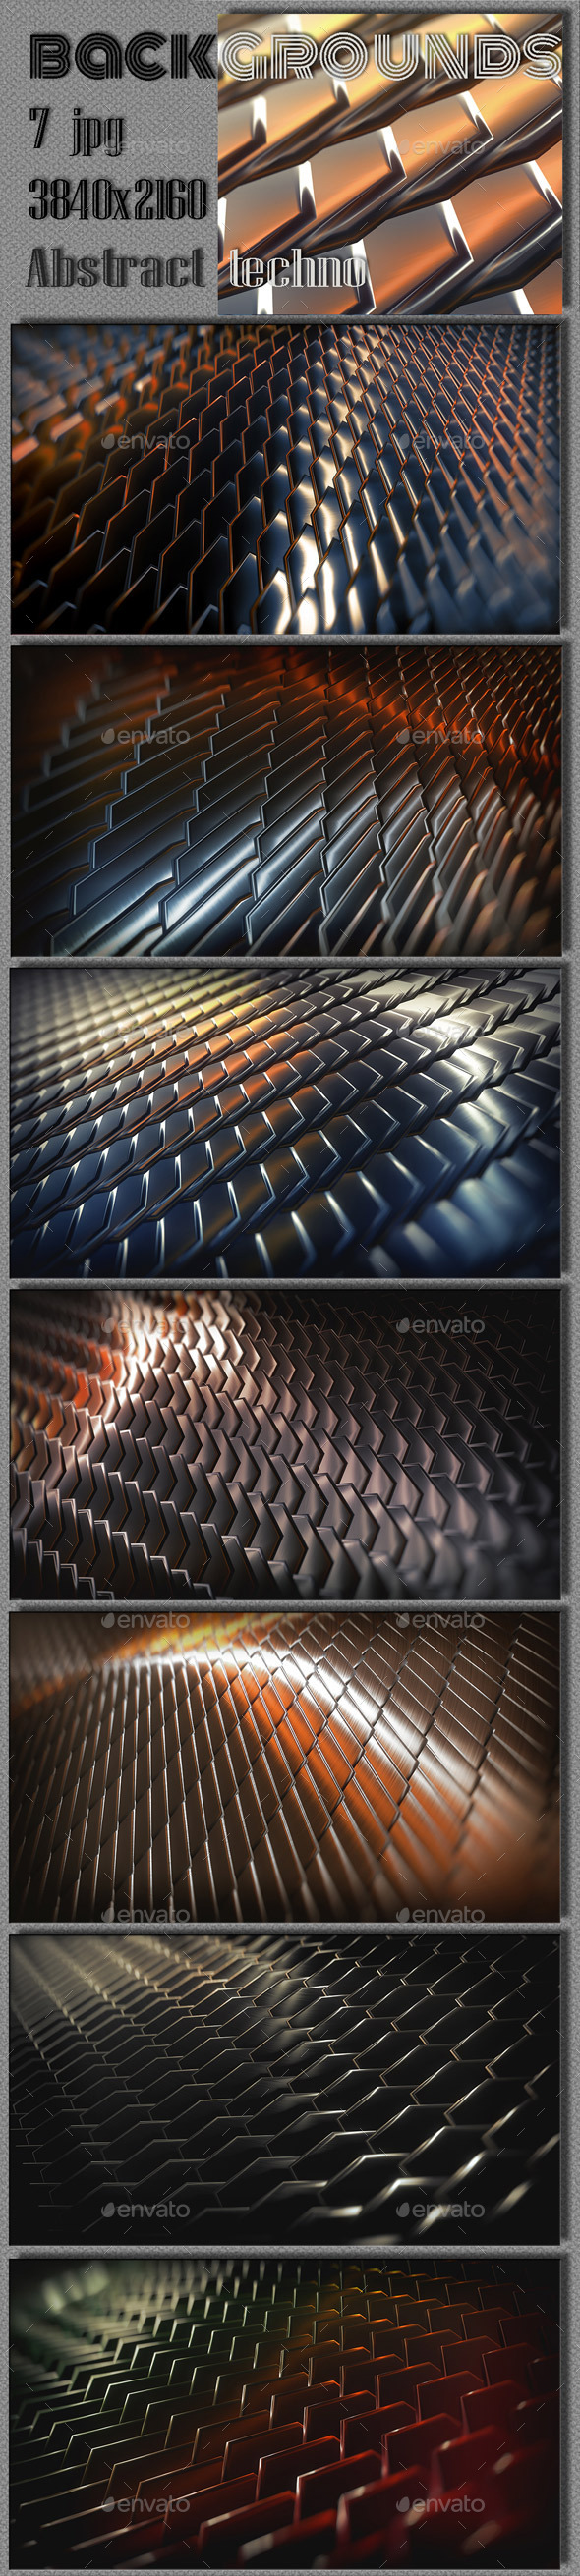 Abstract 3D Steel Collection - 3D Backgrounds